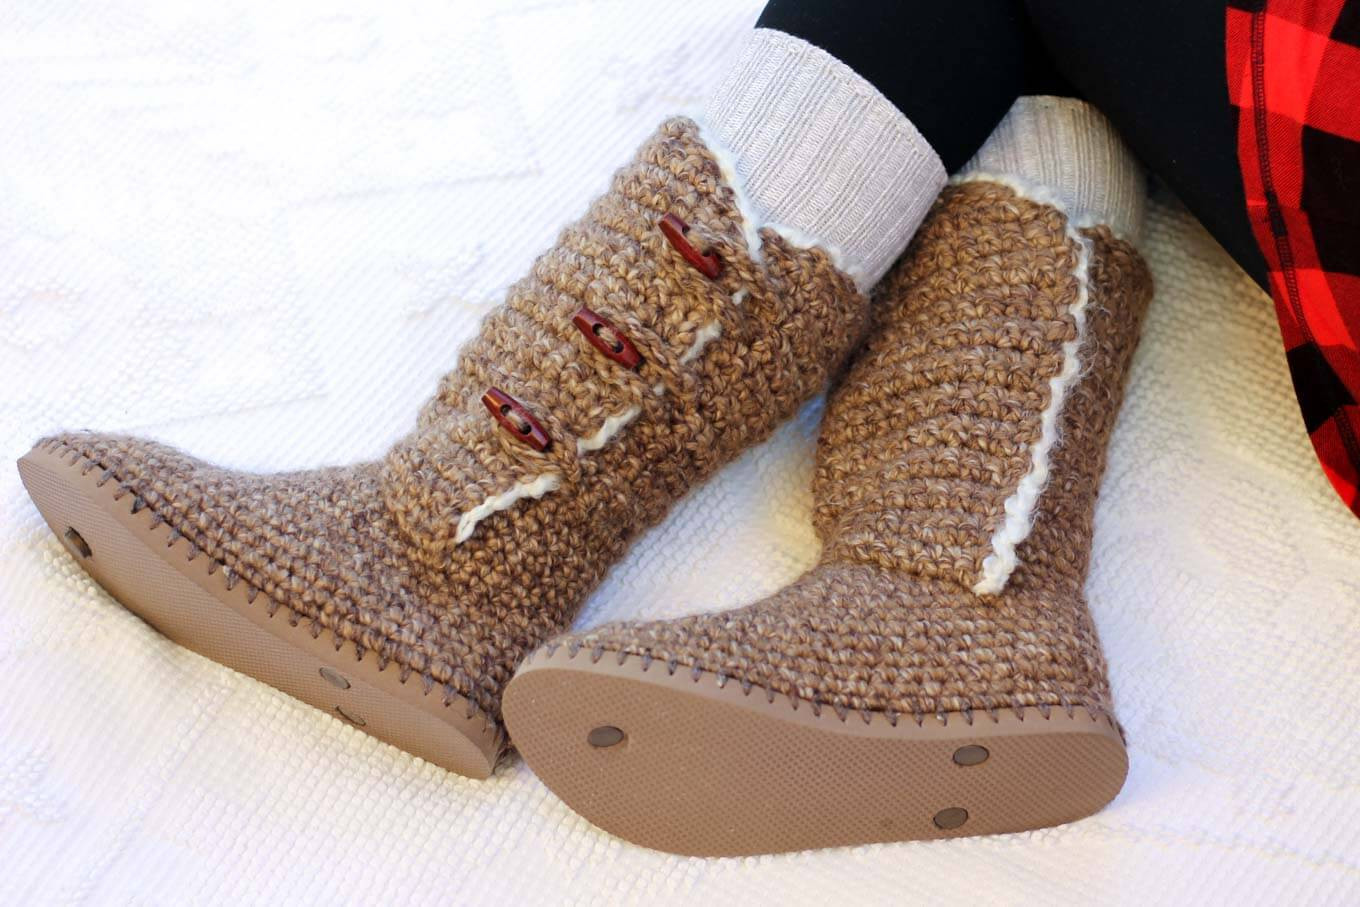 Crochet Boots Pattern Free Lovely Ugg Style Crochet Boots with Flip Flop soles Free Of Amazing 44 Models Crochet Boots Pattern Free